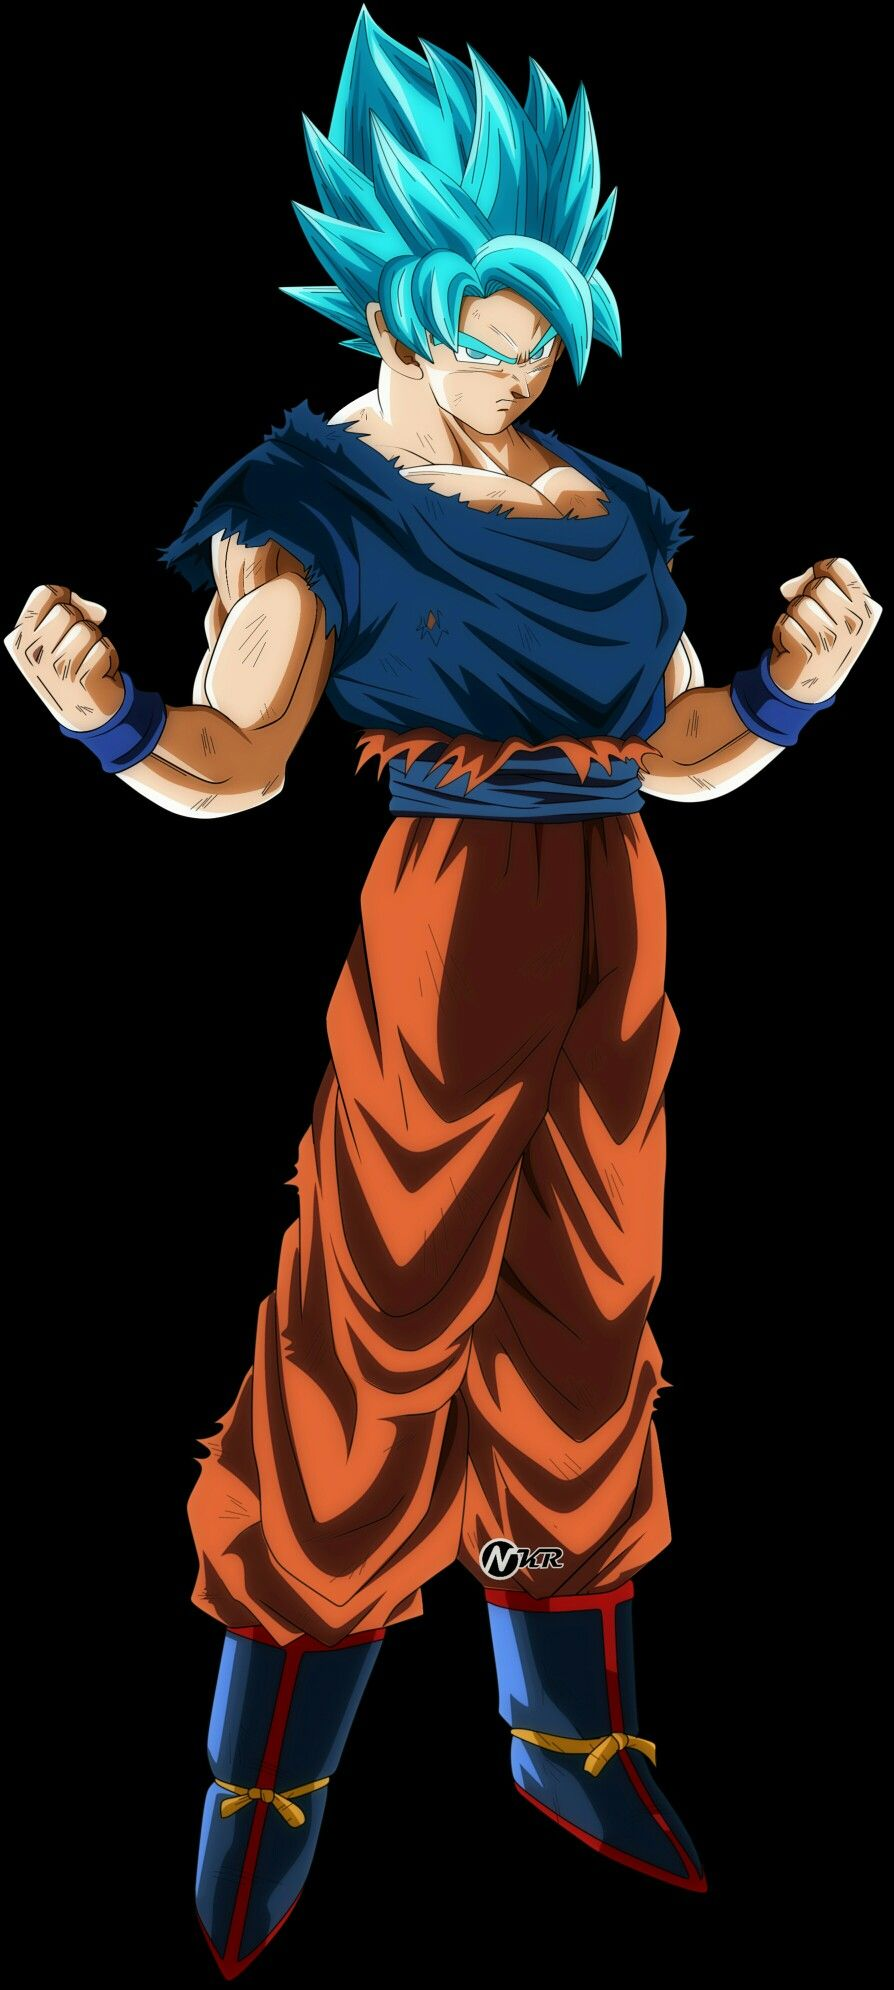 Goku Ssj Blue Universo 7 Dragon Ball Z Dragon Ball